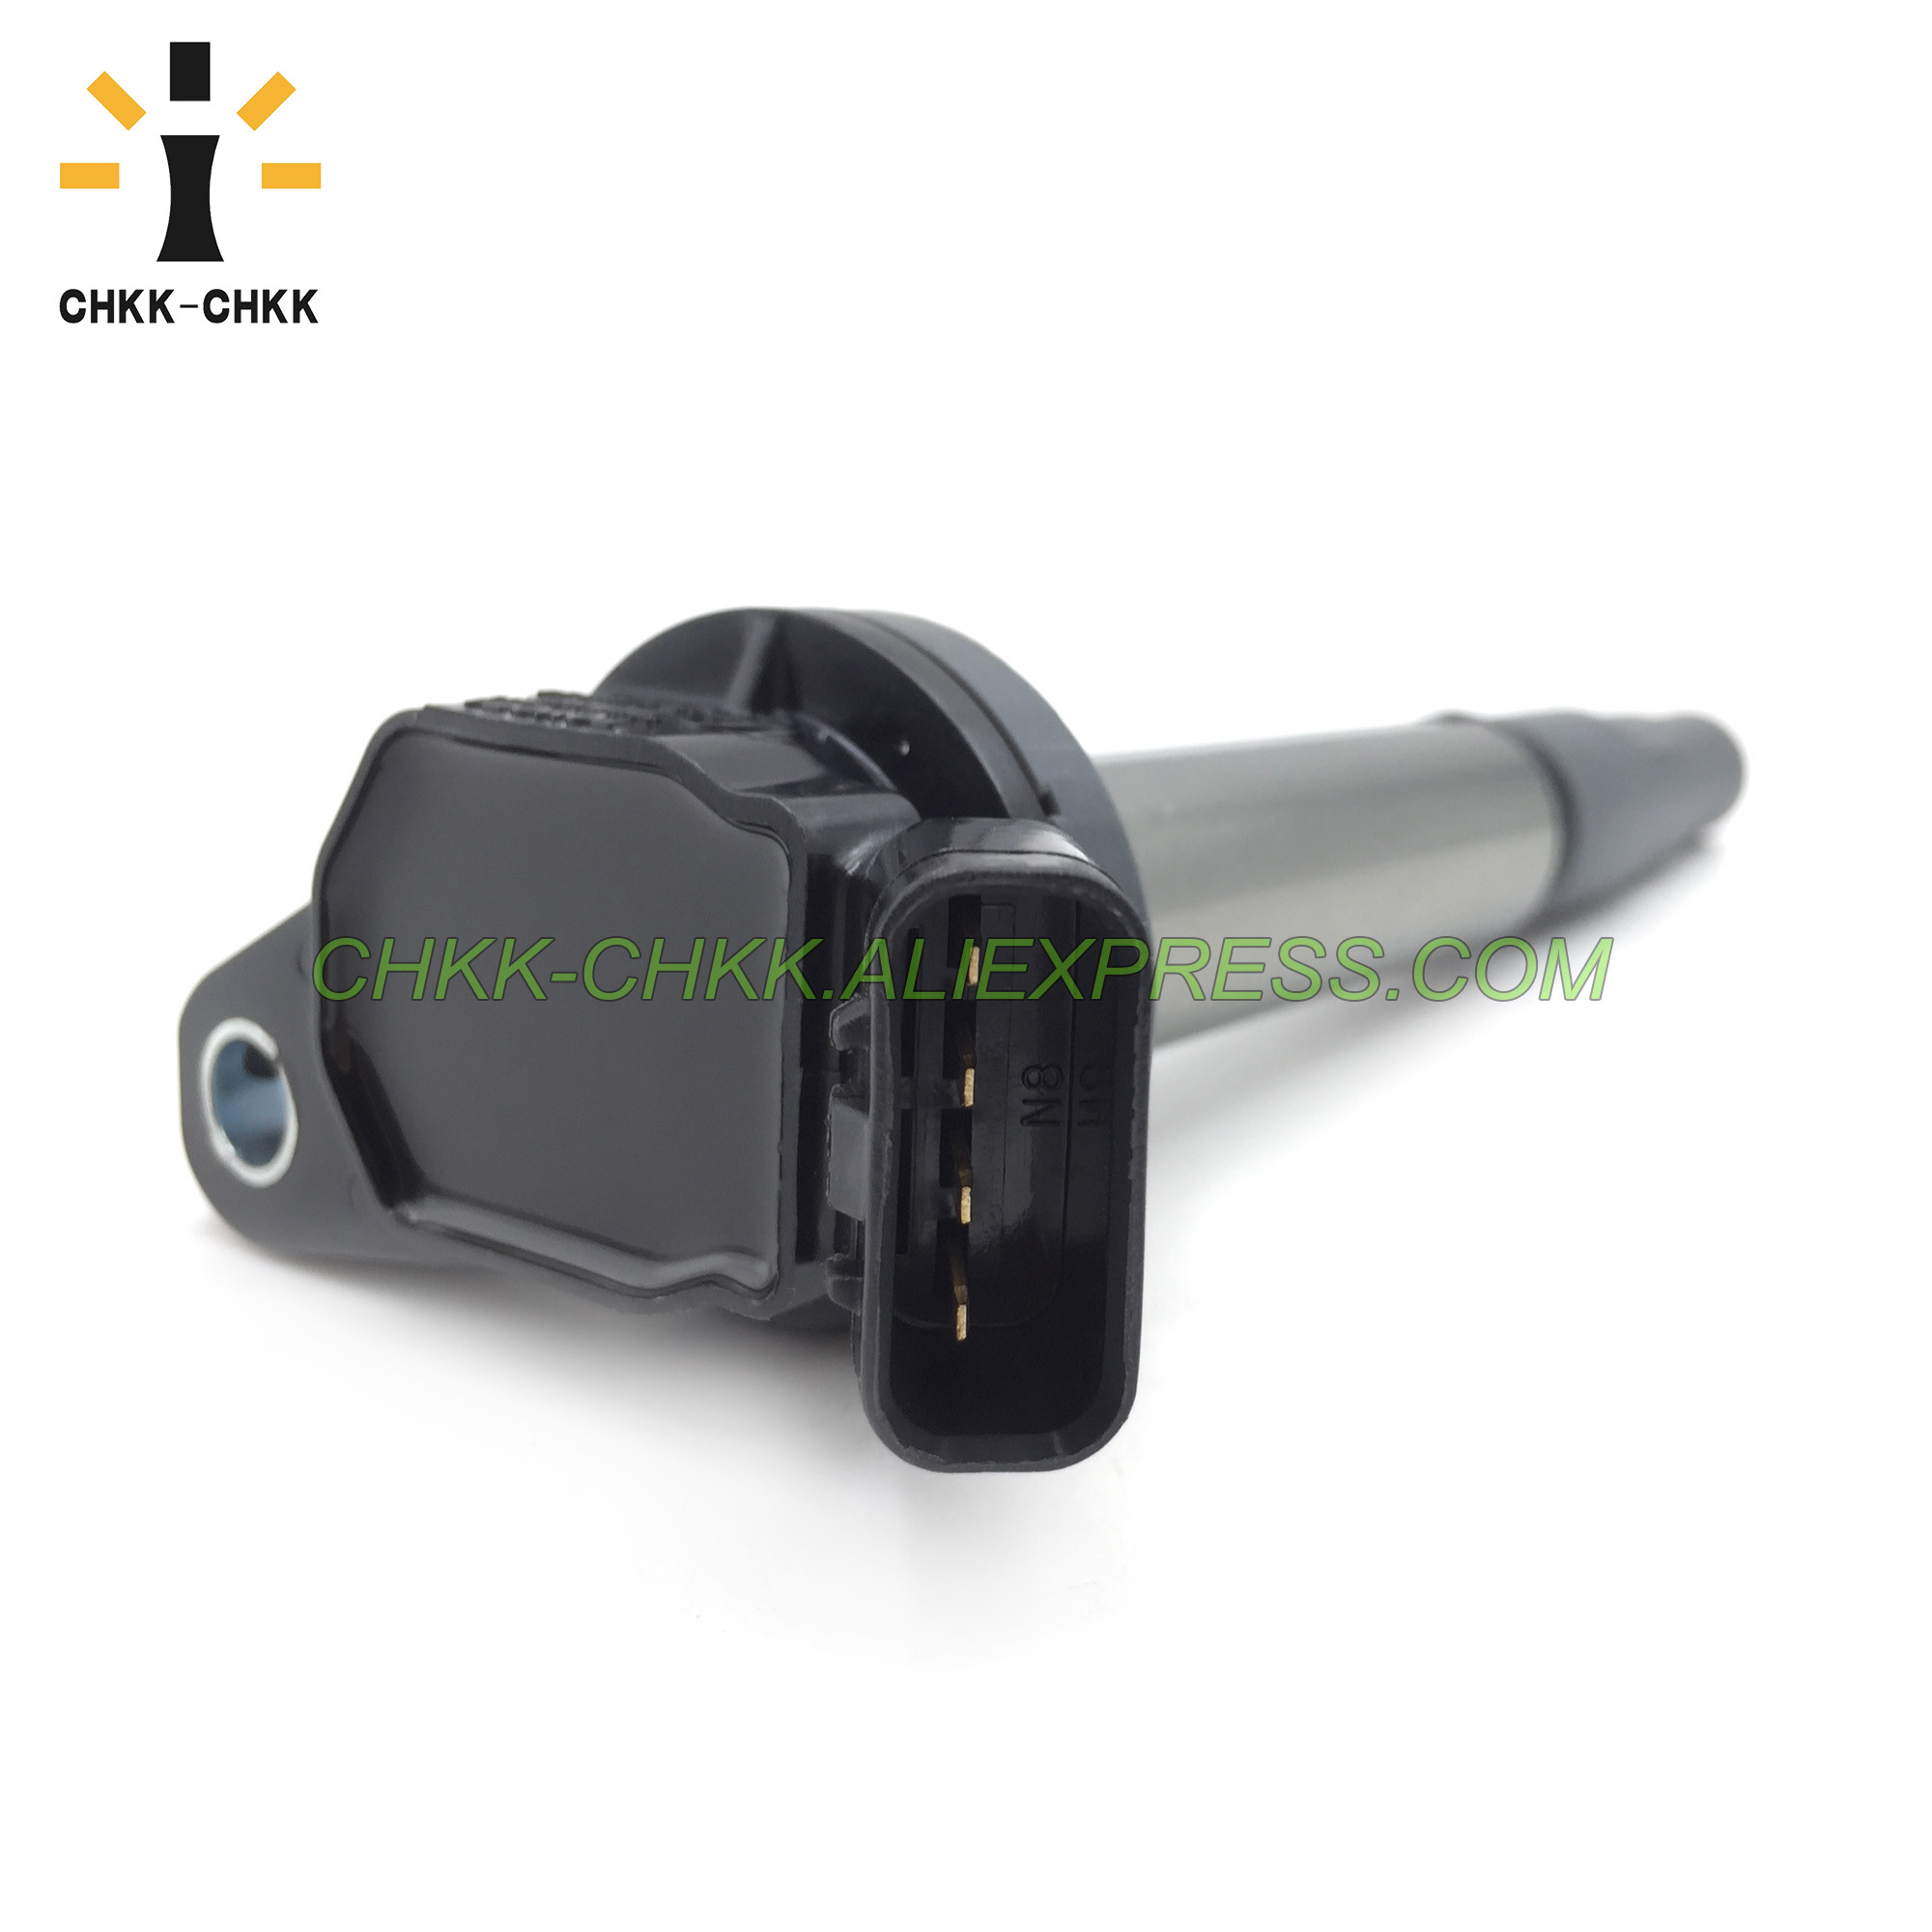 CHKK CHKK new Ignition Coil OEM 90919 C2005 for Toyota Corolla ZRE120 ZRE15 ZRE18 RAV4 Yaris 90919C2005 in Ignition Coil from Automobiles Motorcycles